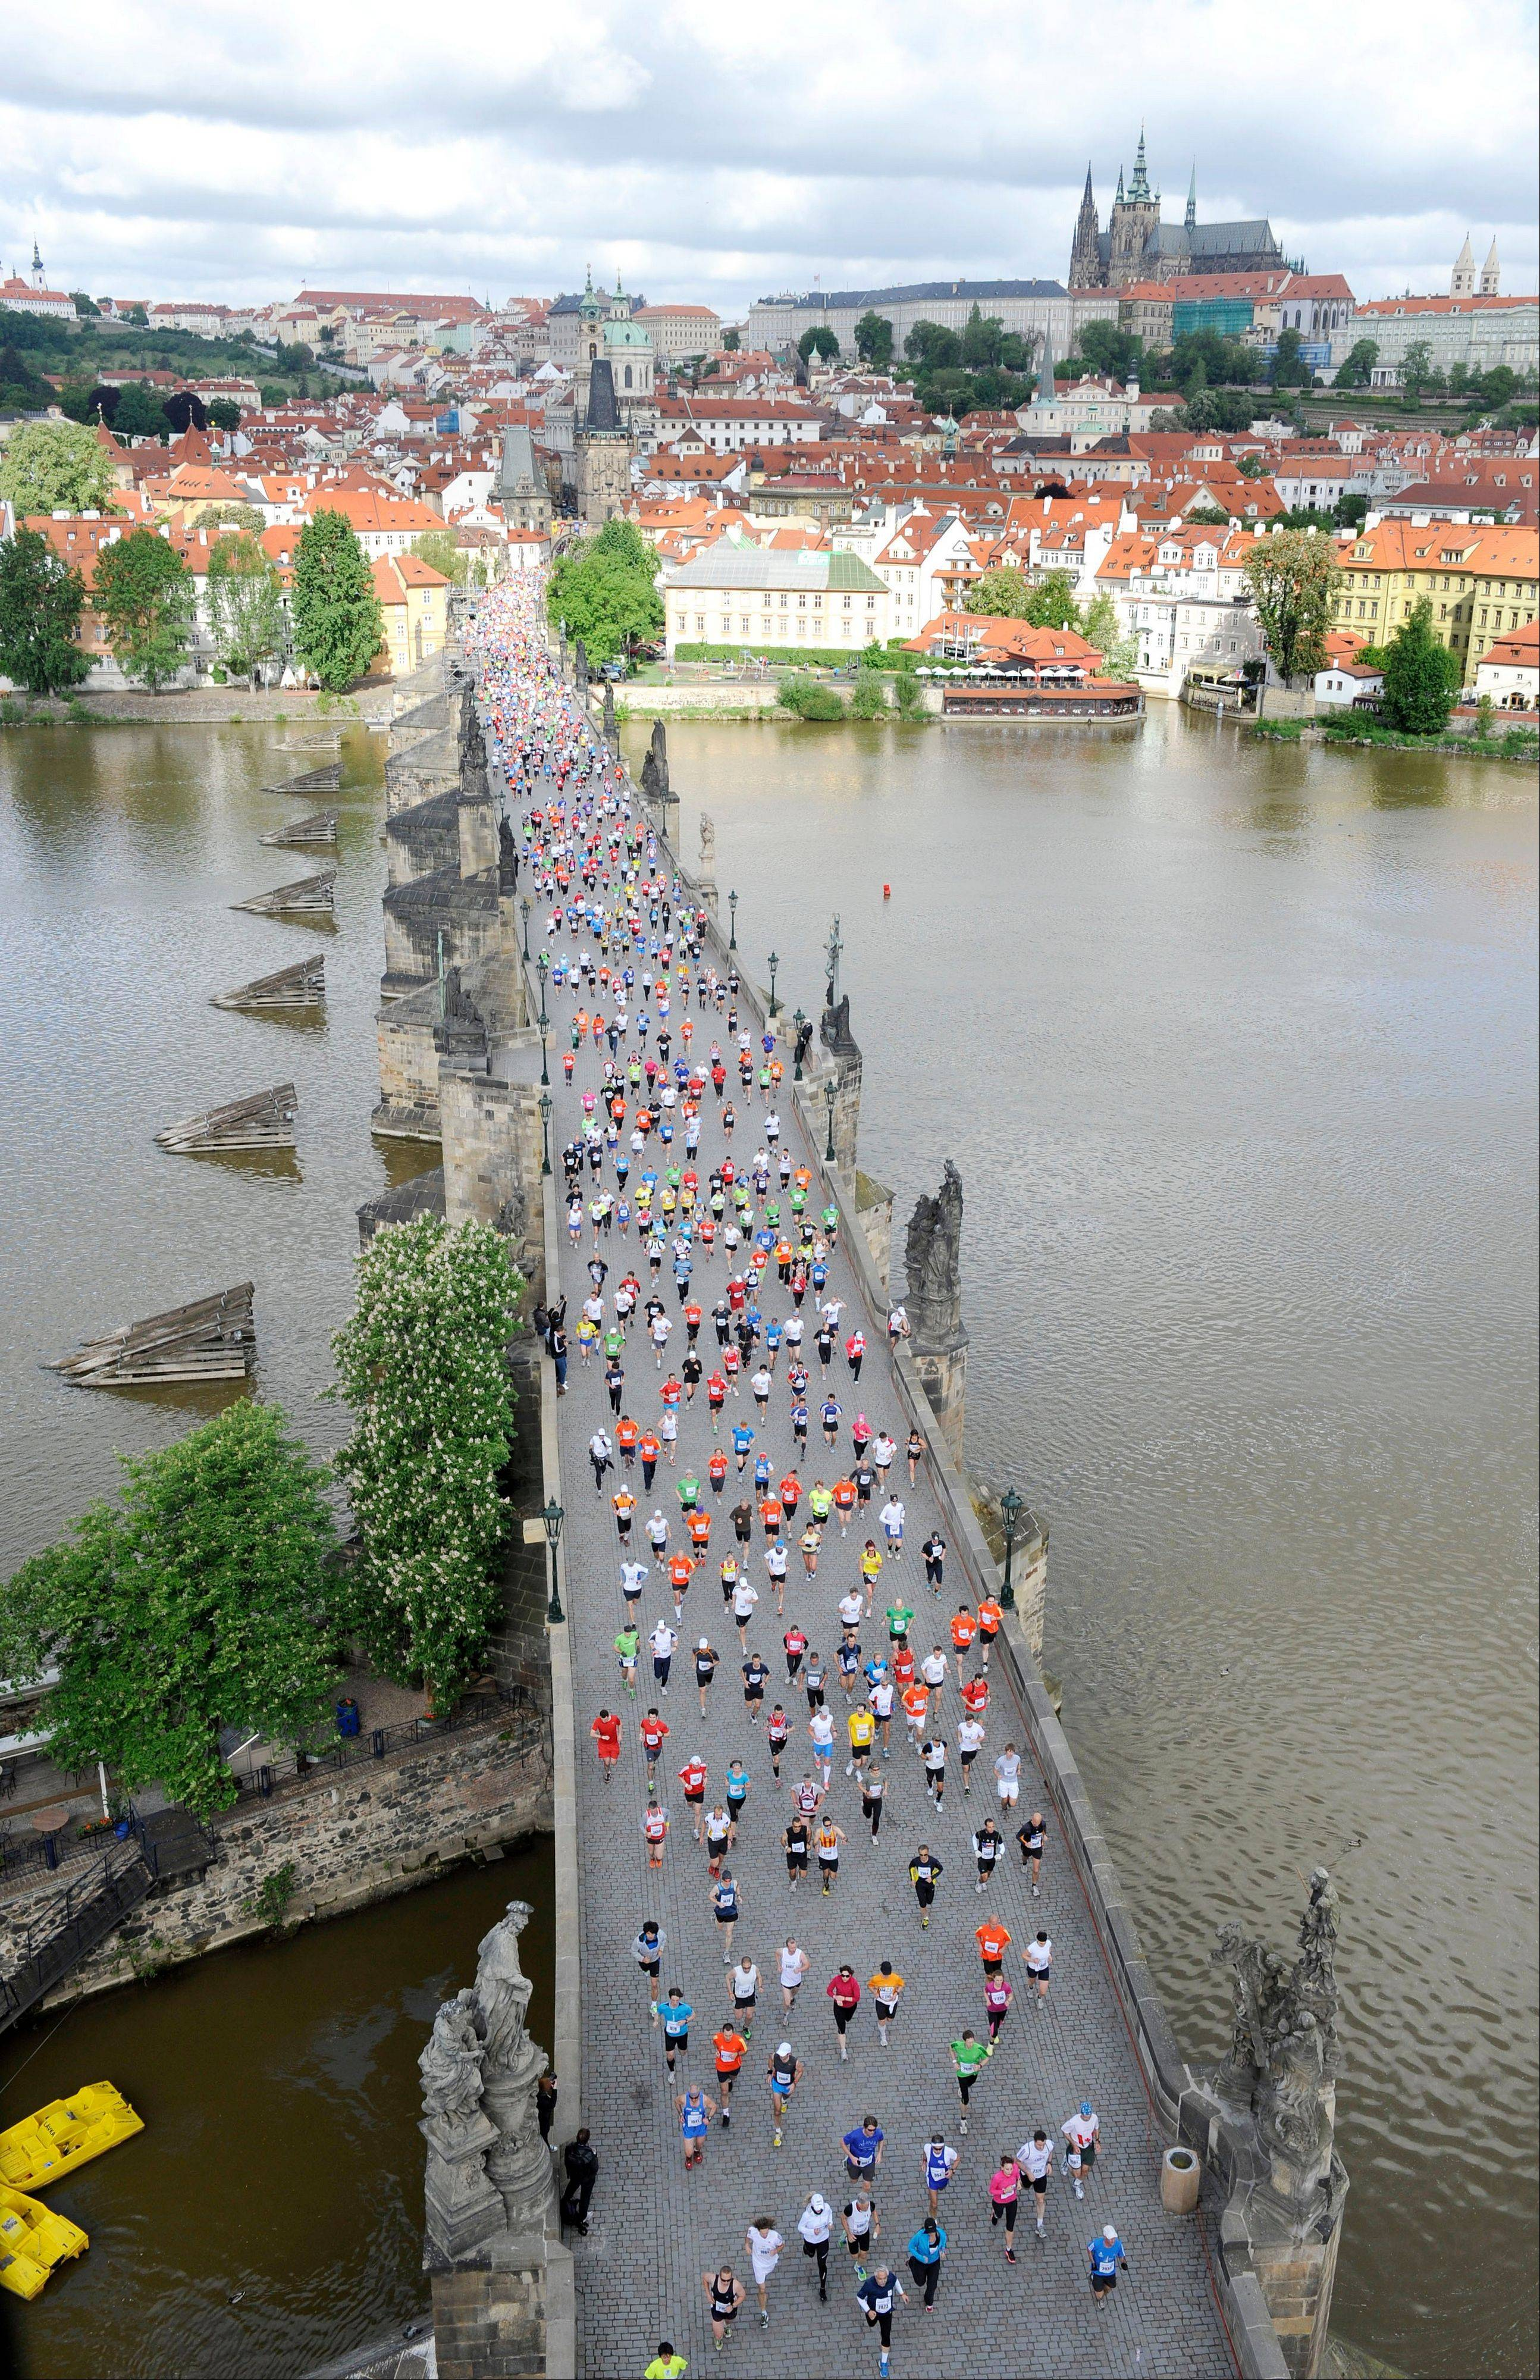 Runners cross the Charles Bridge during the Prague International Marathon in Prague.